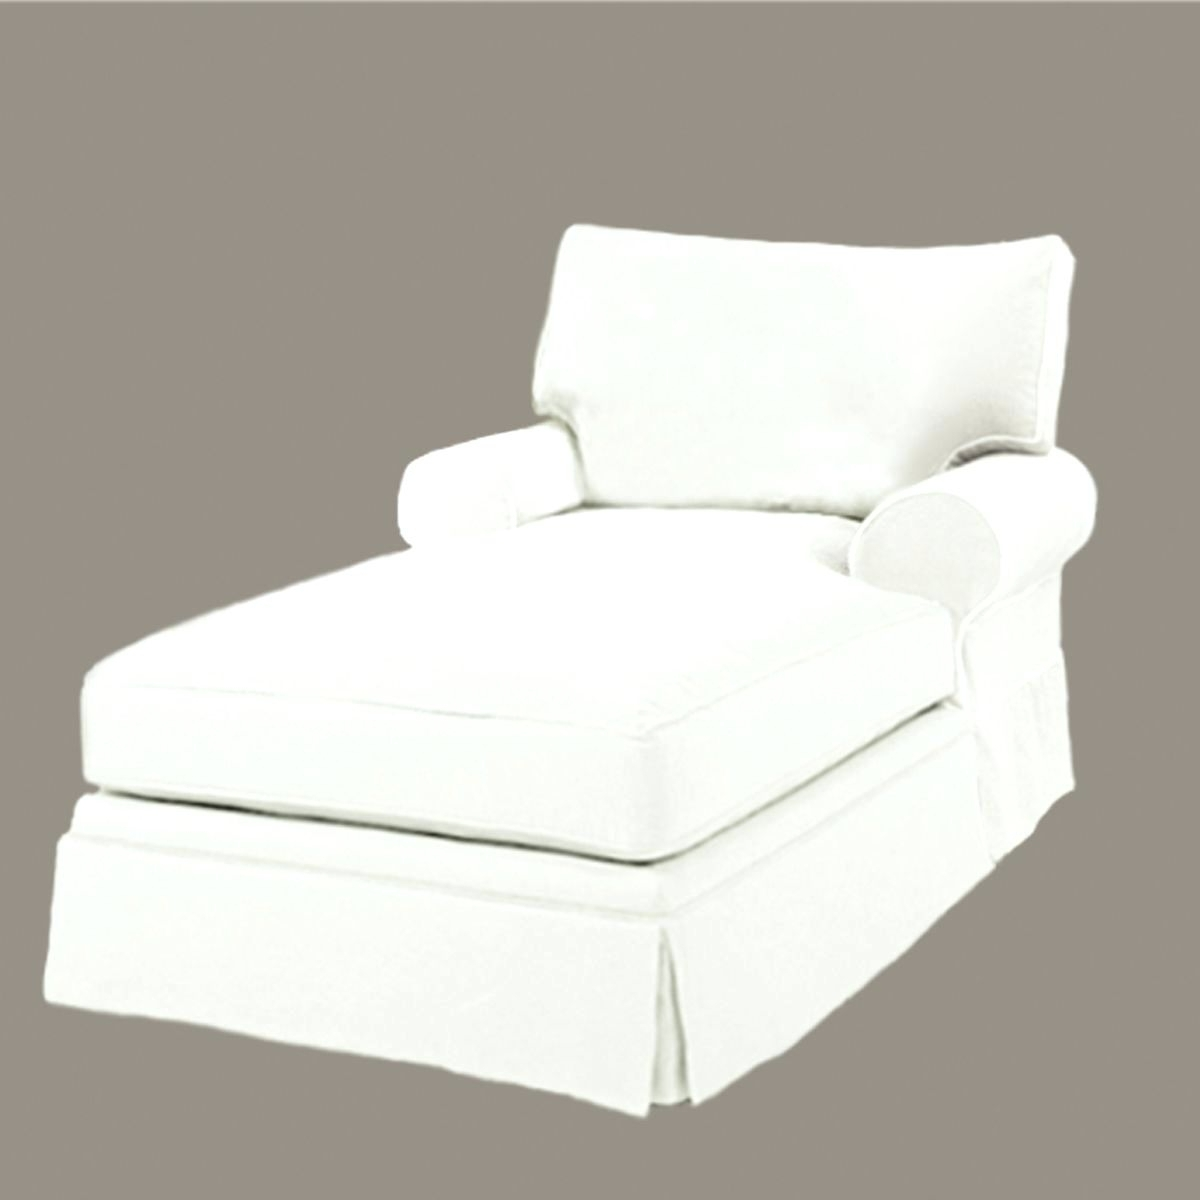 Slipcovesr For Chaise Lounge Inside Preferred Cover For Indoor Chaise Lounge Chair • Lounge Chairs Ideas (View 15 of 15)